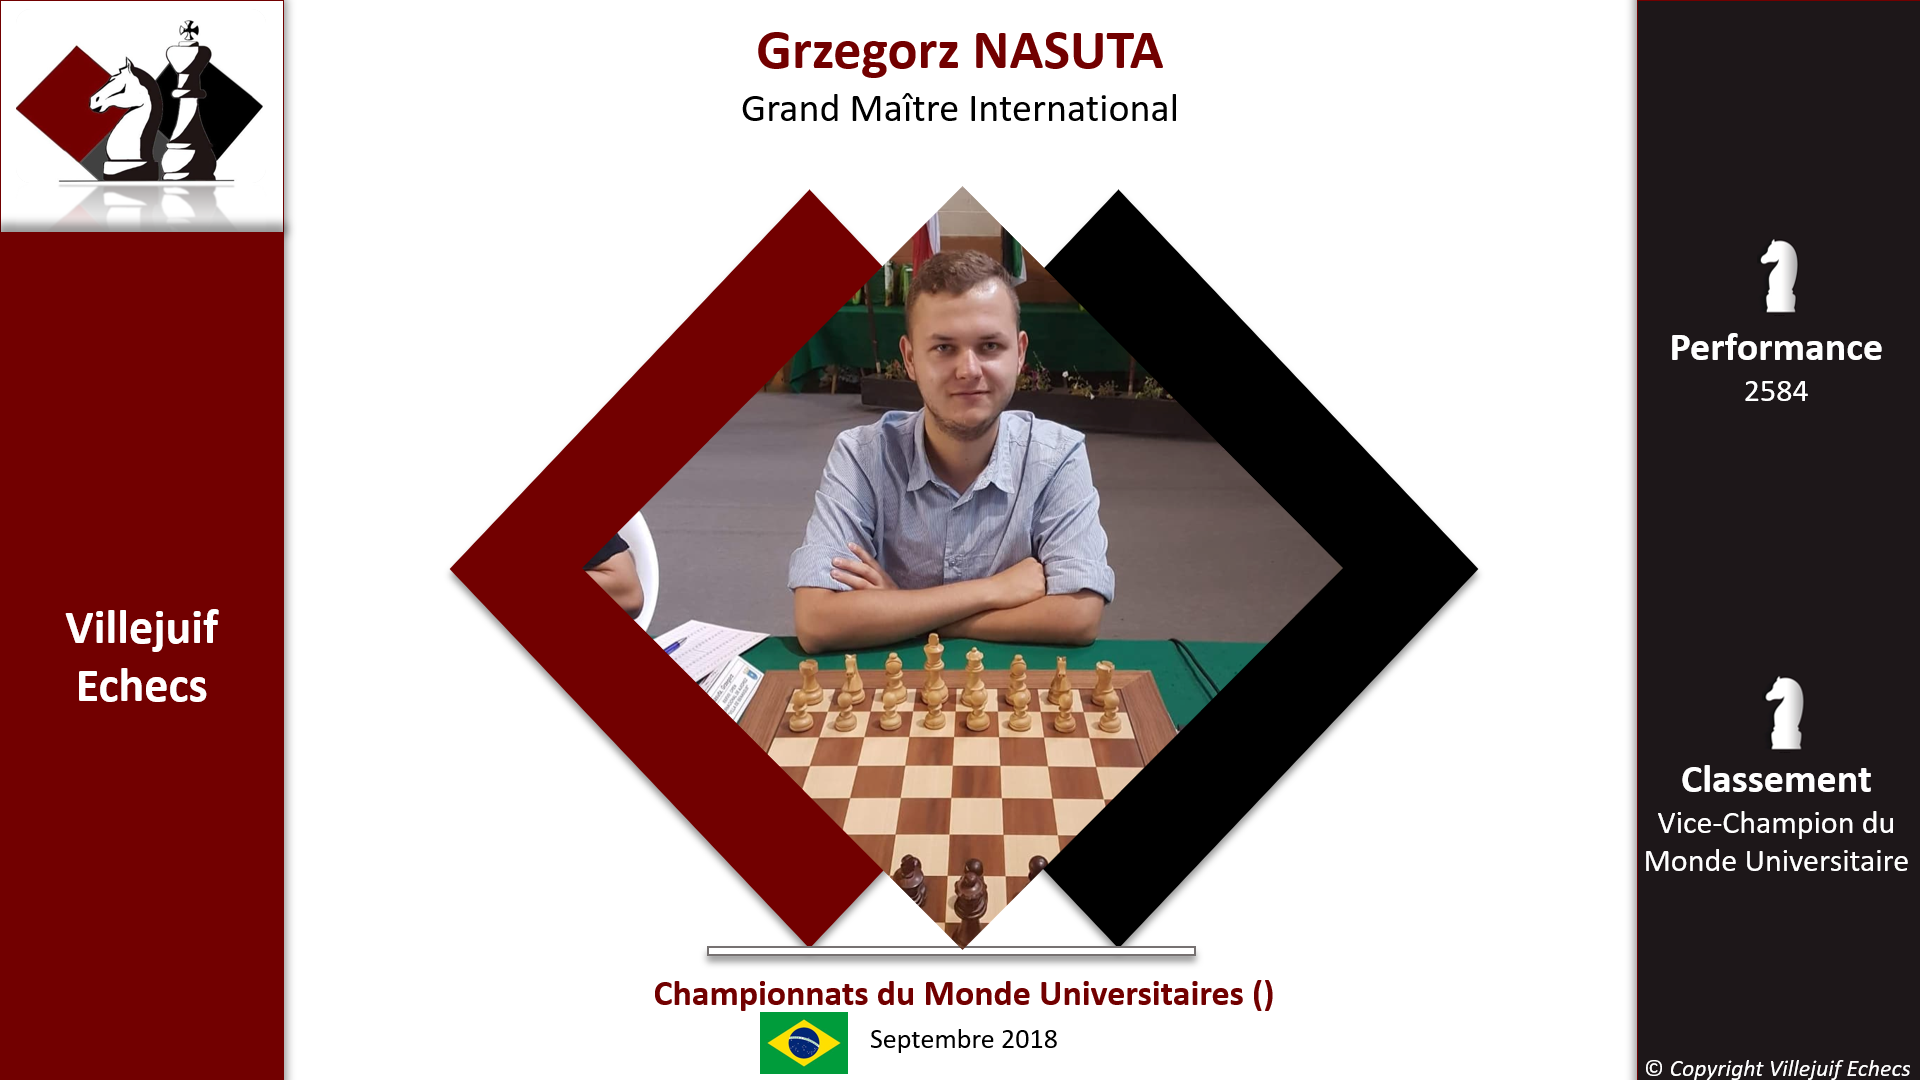 Grzegorz Vice-Champion du Monde Universitaire!